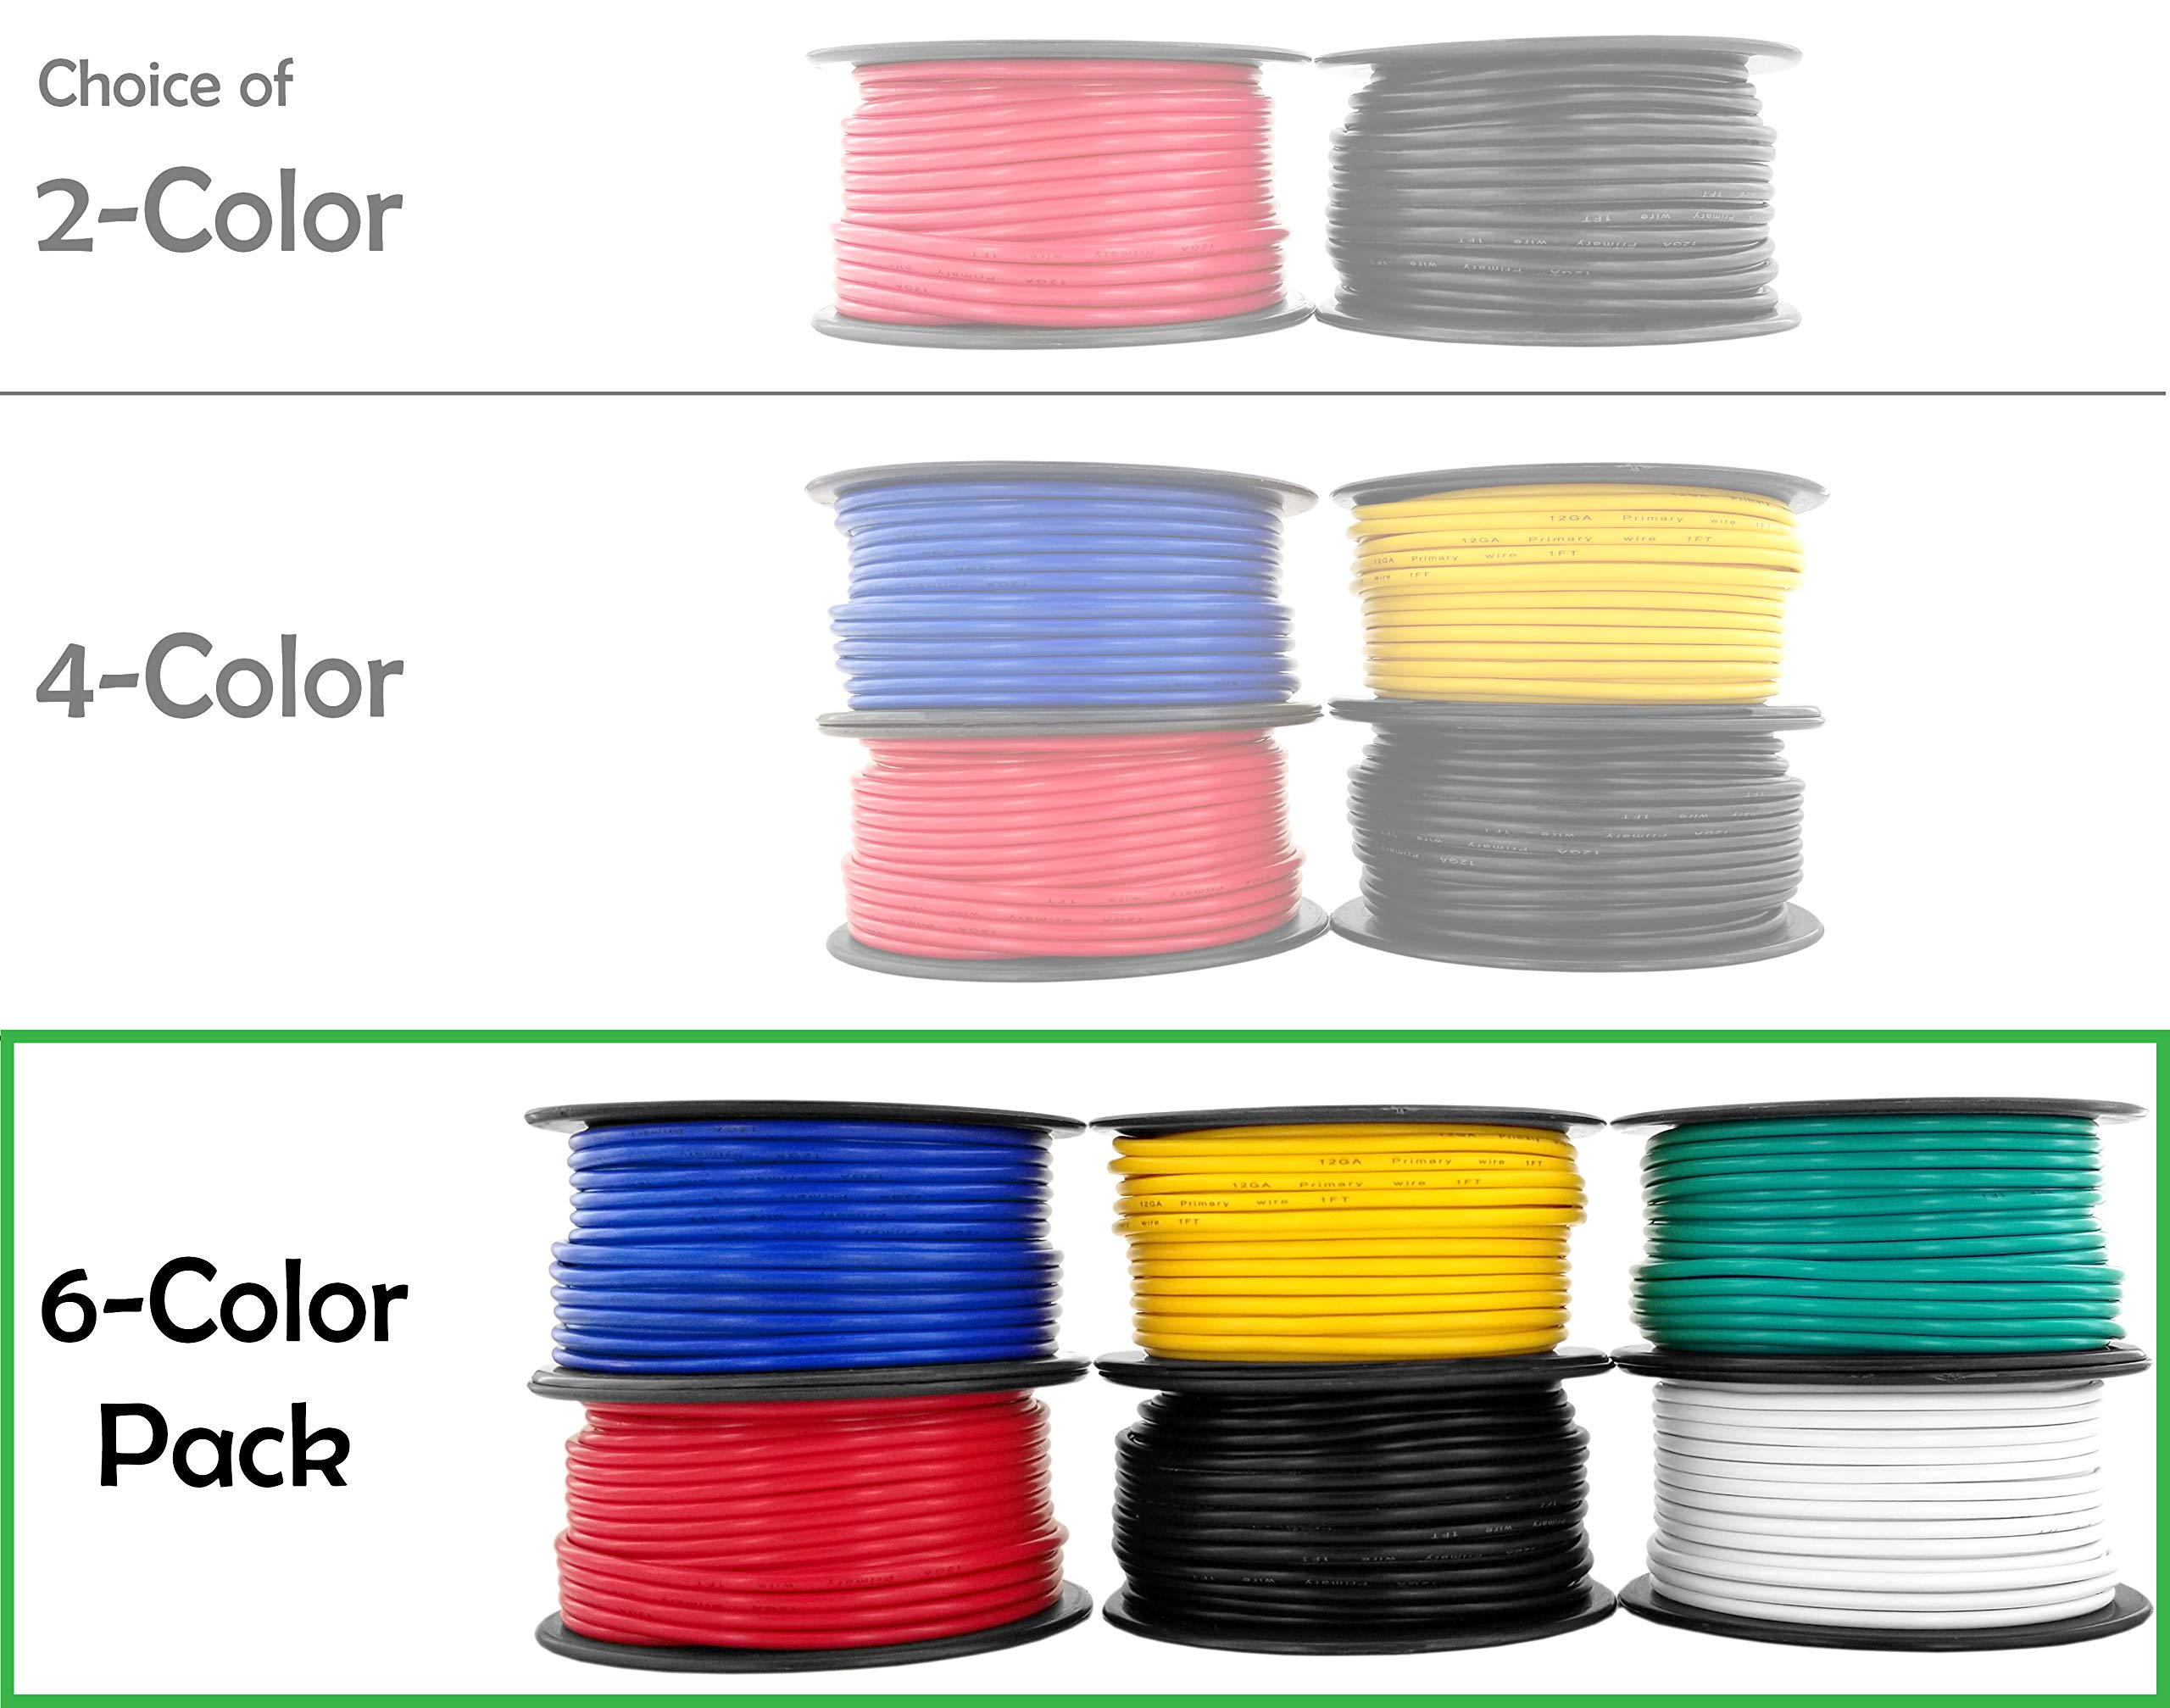 12 Gauge Copper Clad Aluminum Low Voltage Primary Wire 6 Color Combo 100 ft per Roll (600 feet Total) for 12V Automotive Trailer Light Car Audio Stereo Harness Wiring (Also in 2 or 4 Color Combo) by GS Power